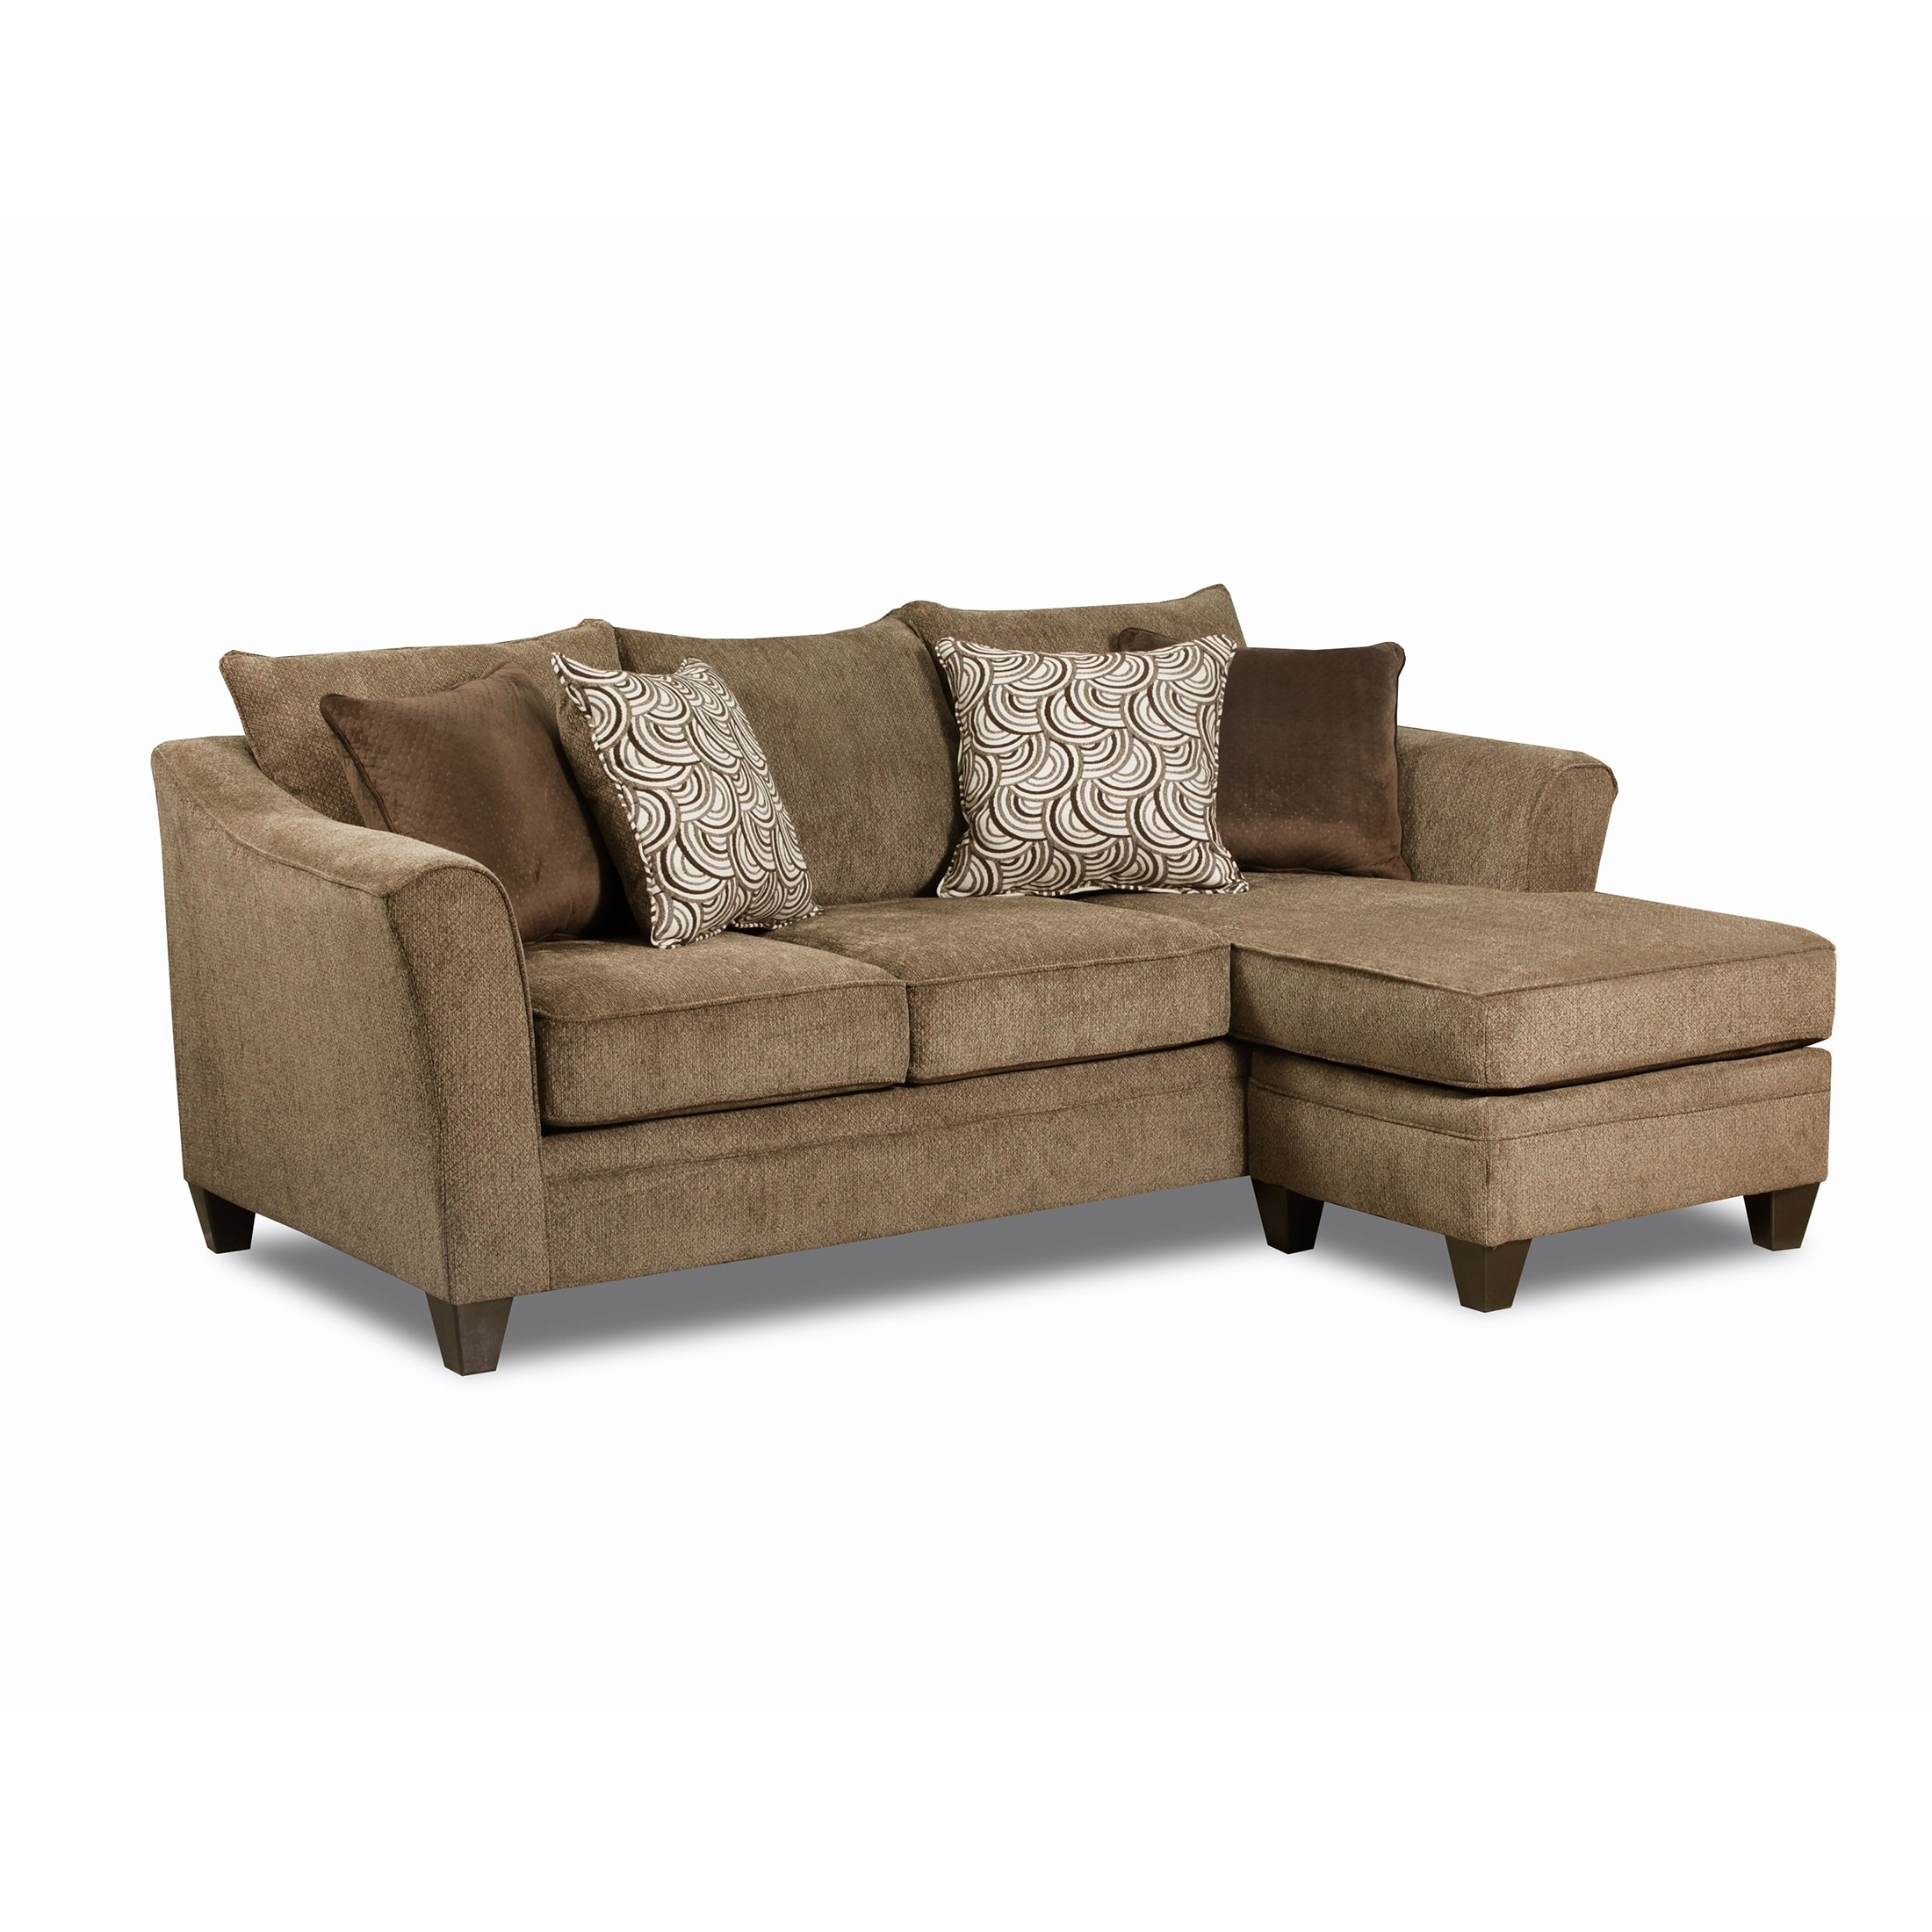 Simmons Upholstery Albany Truffle Sofa Chaise – Free Shipping Today Regarding Simmons Chaise Sofas (View 6 of 10)